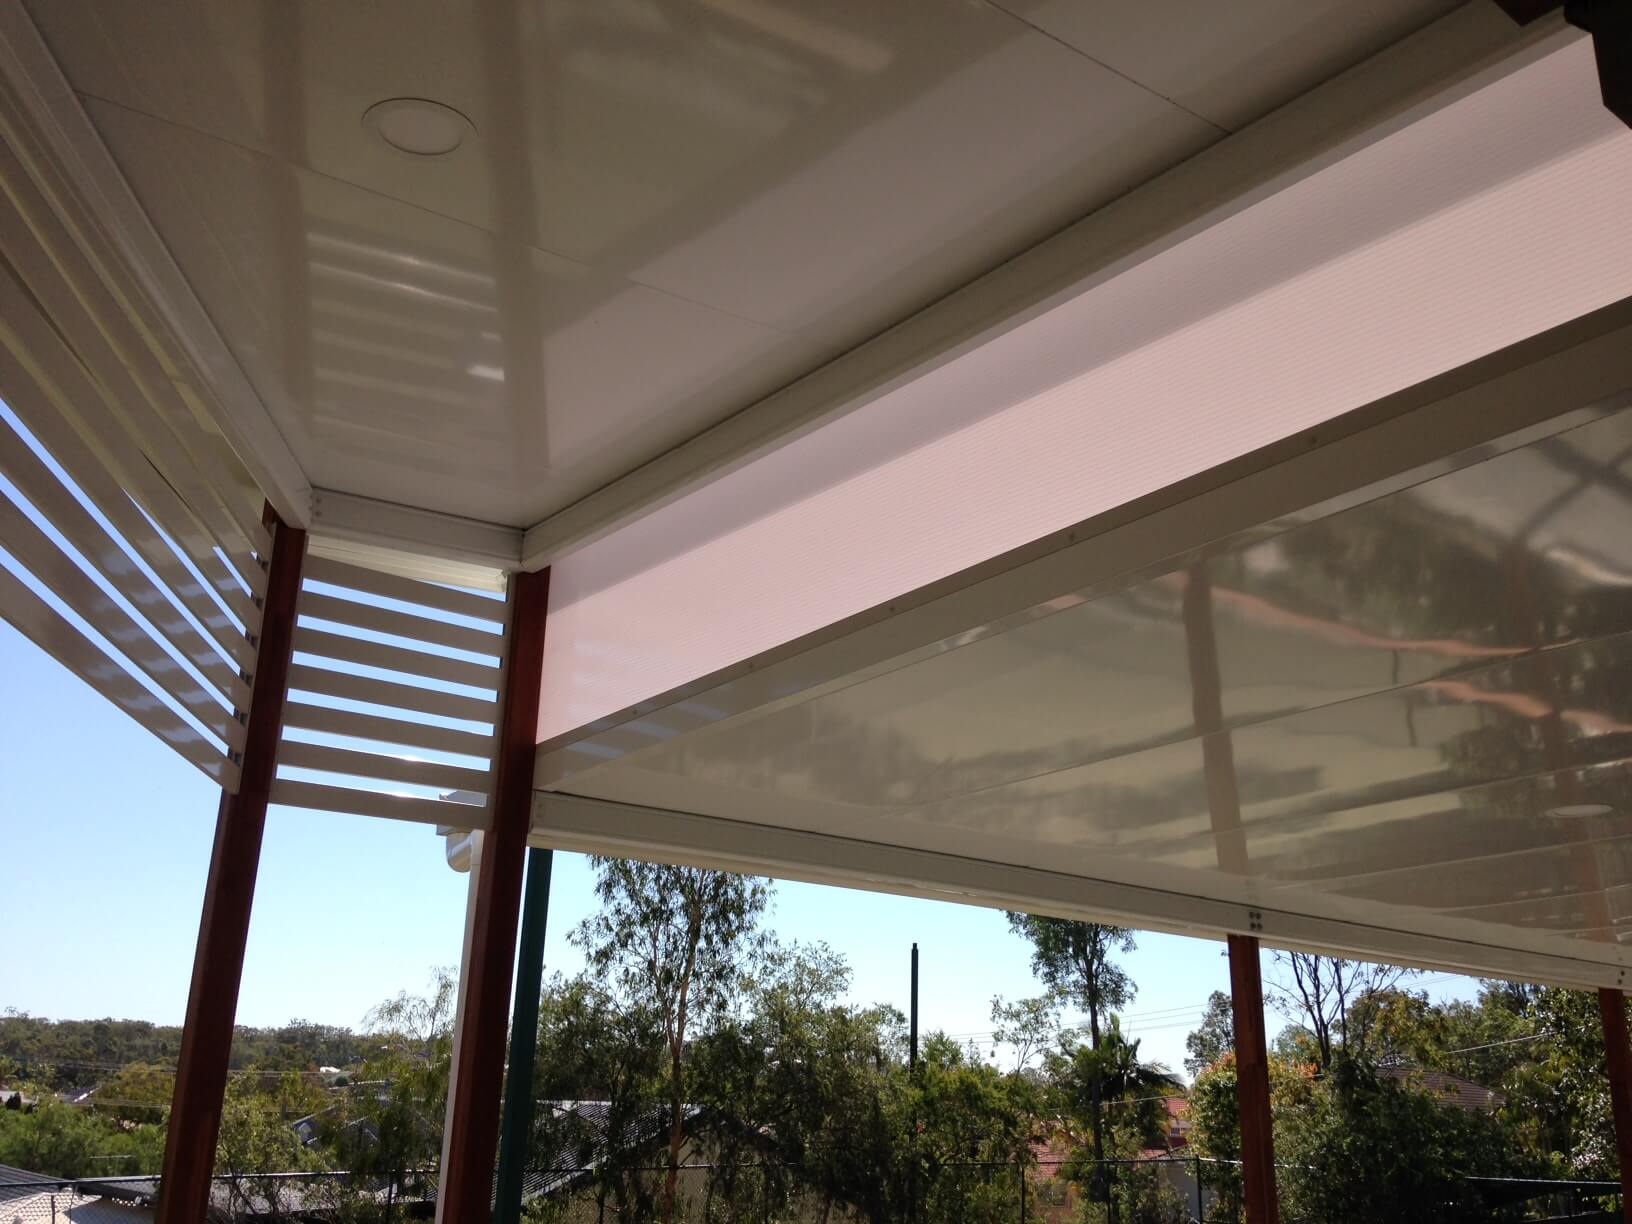 Cooldeck Design in Chermside